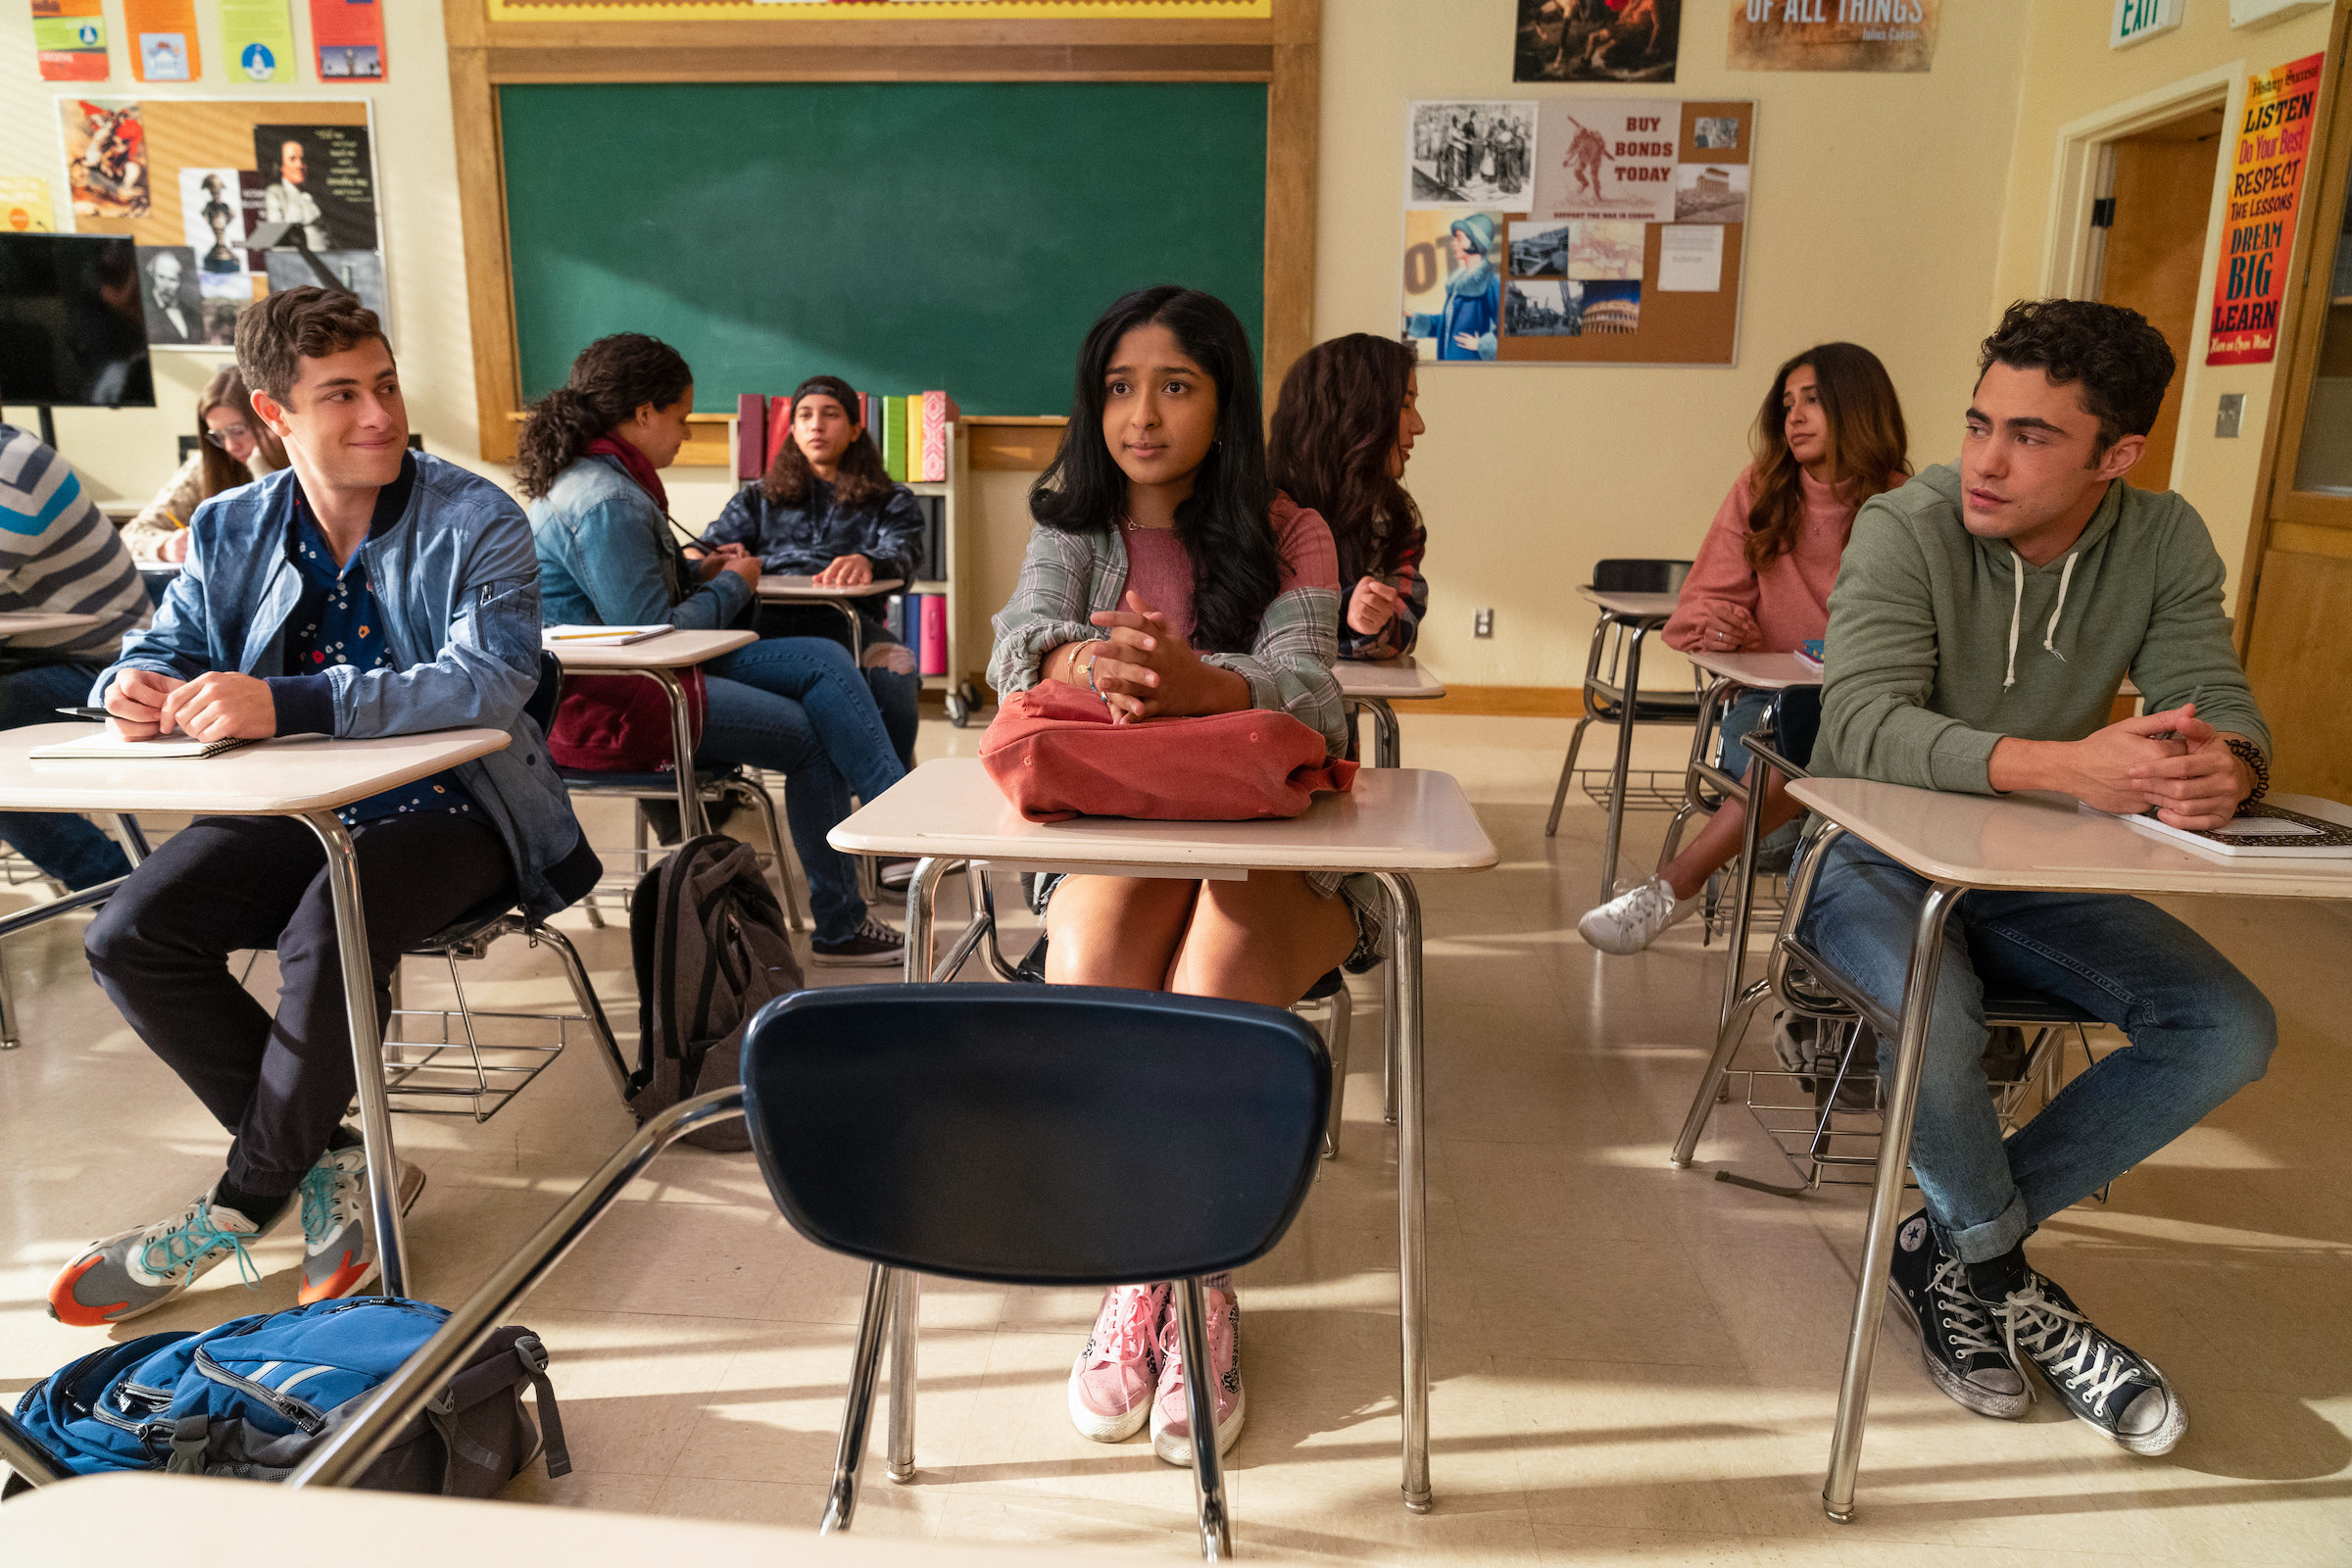 Devi sitting at her desk in class while her classmates sit around her